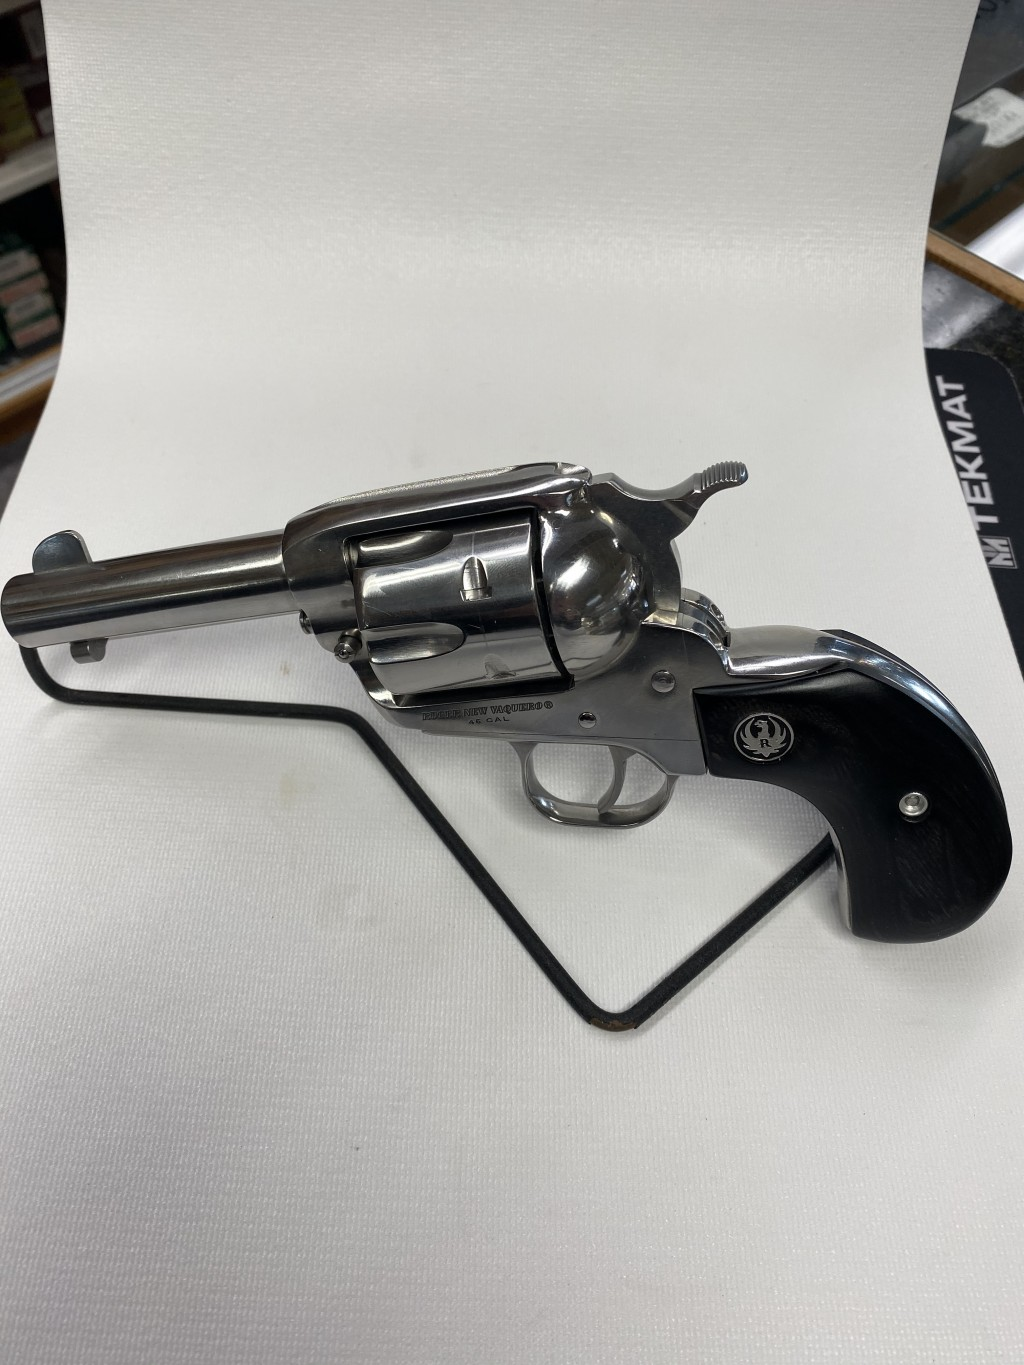 USED RUGER VAQUERO 45LC 3.7 REVOLVER  **PRE-OWNED, NEVER FIRED**